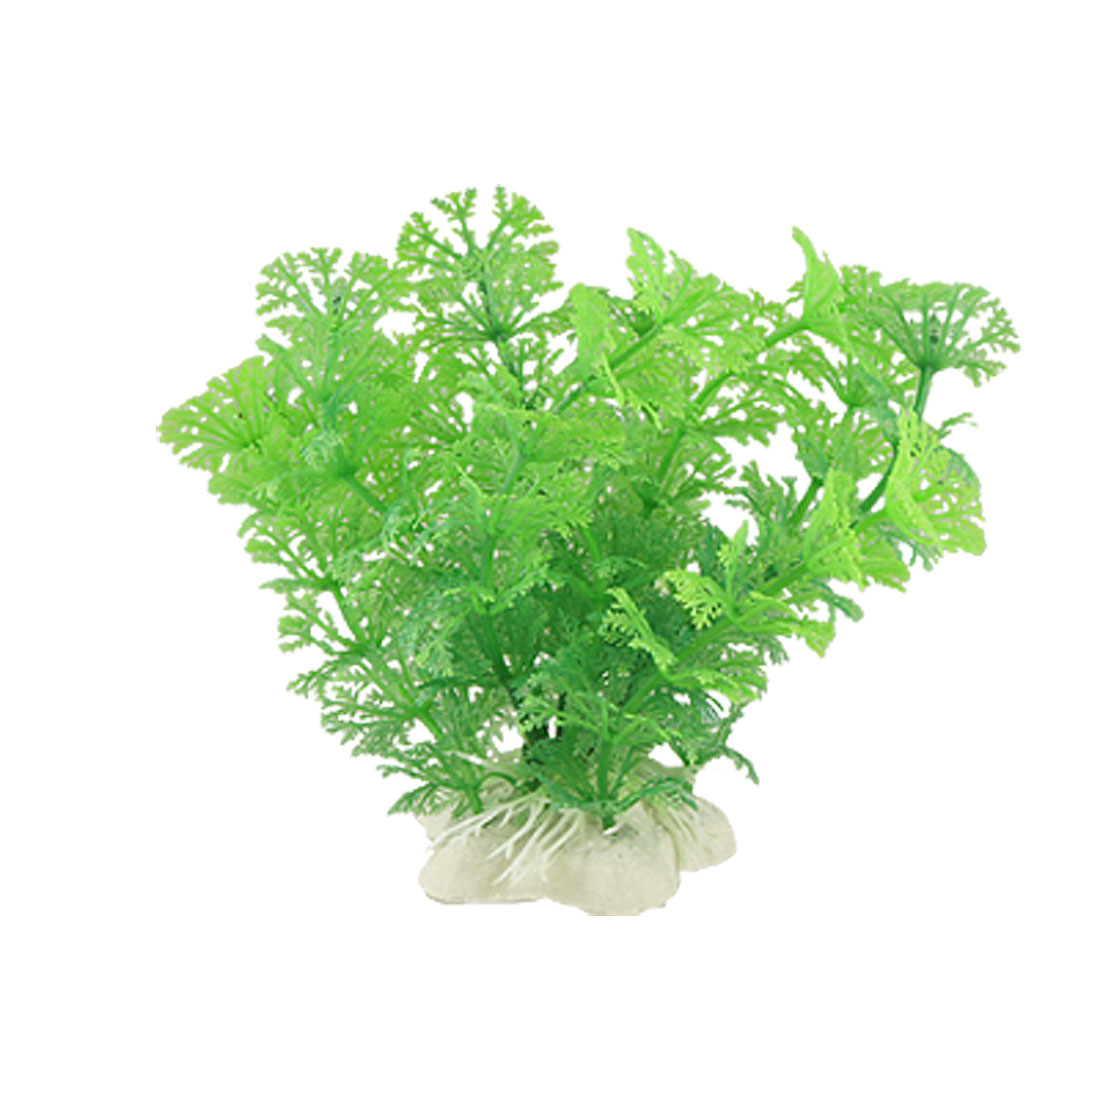 Fish Tank Decor Emulational Green Leaves Plants Plants w Base